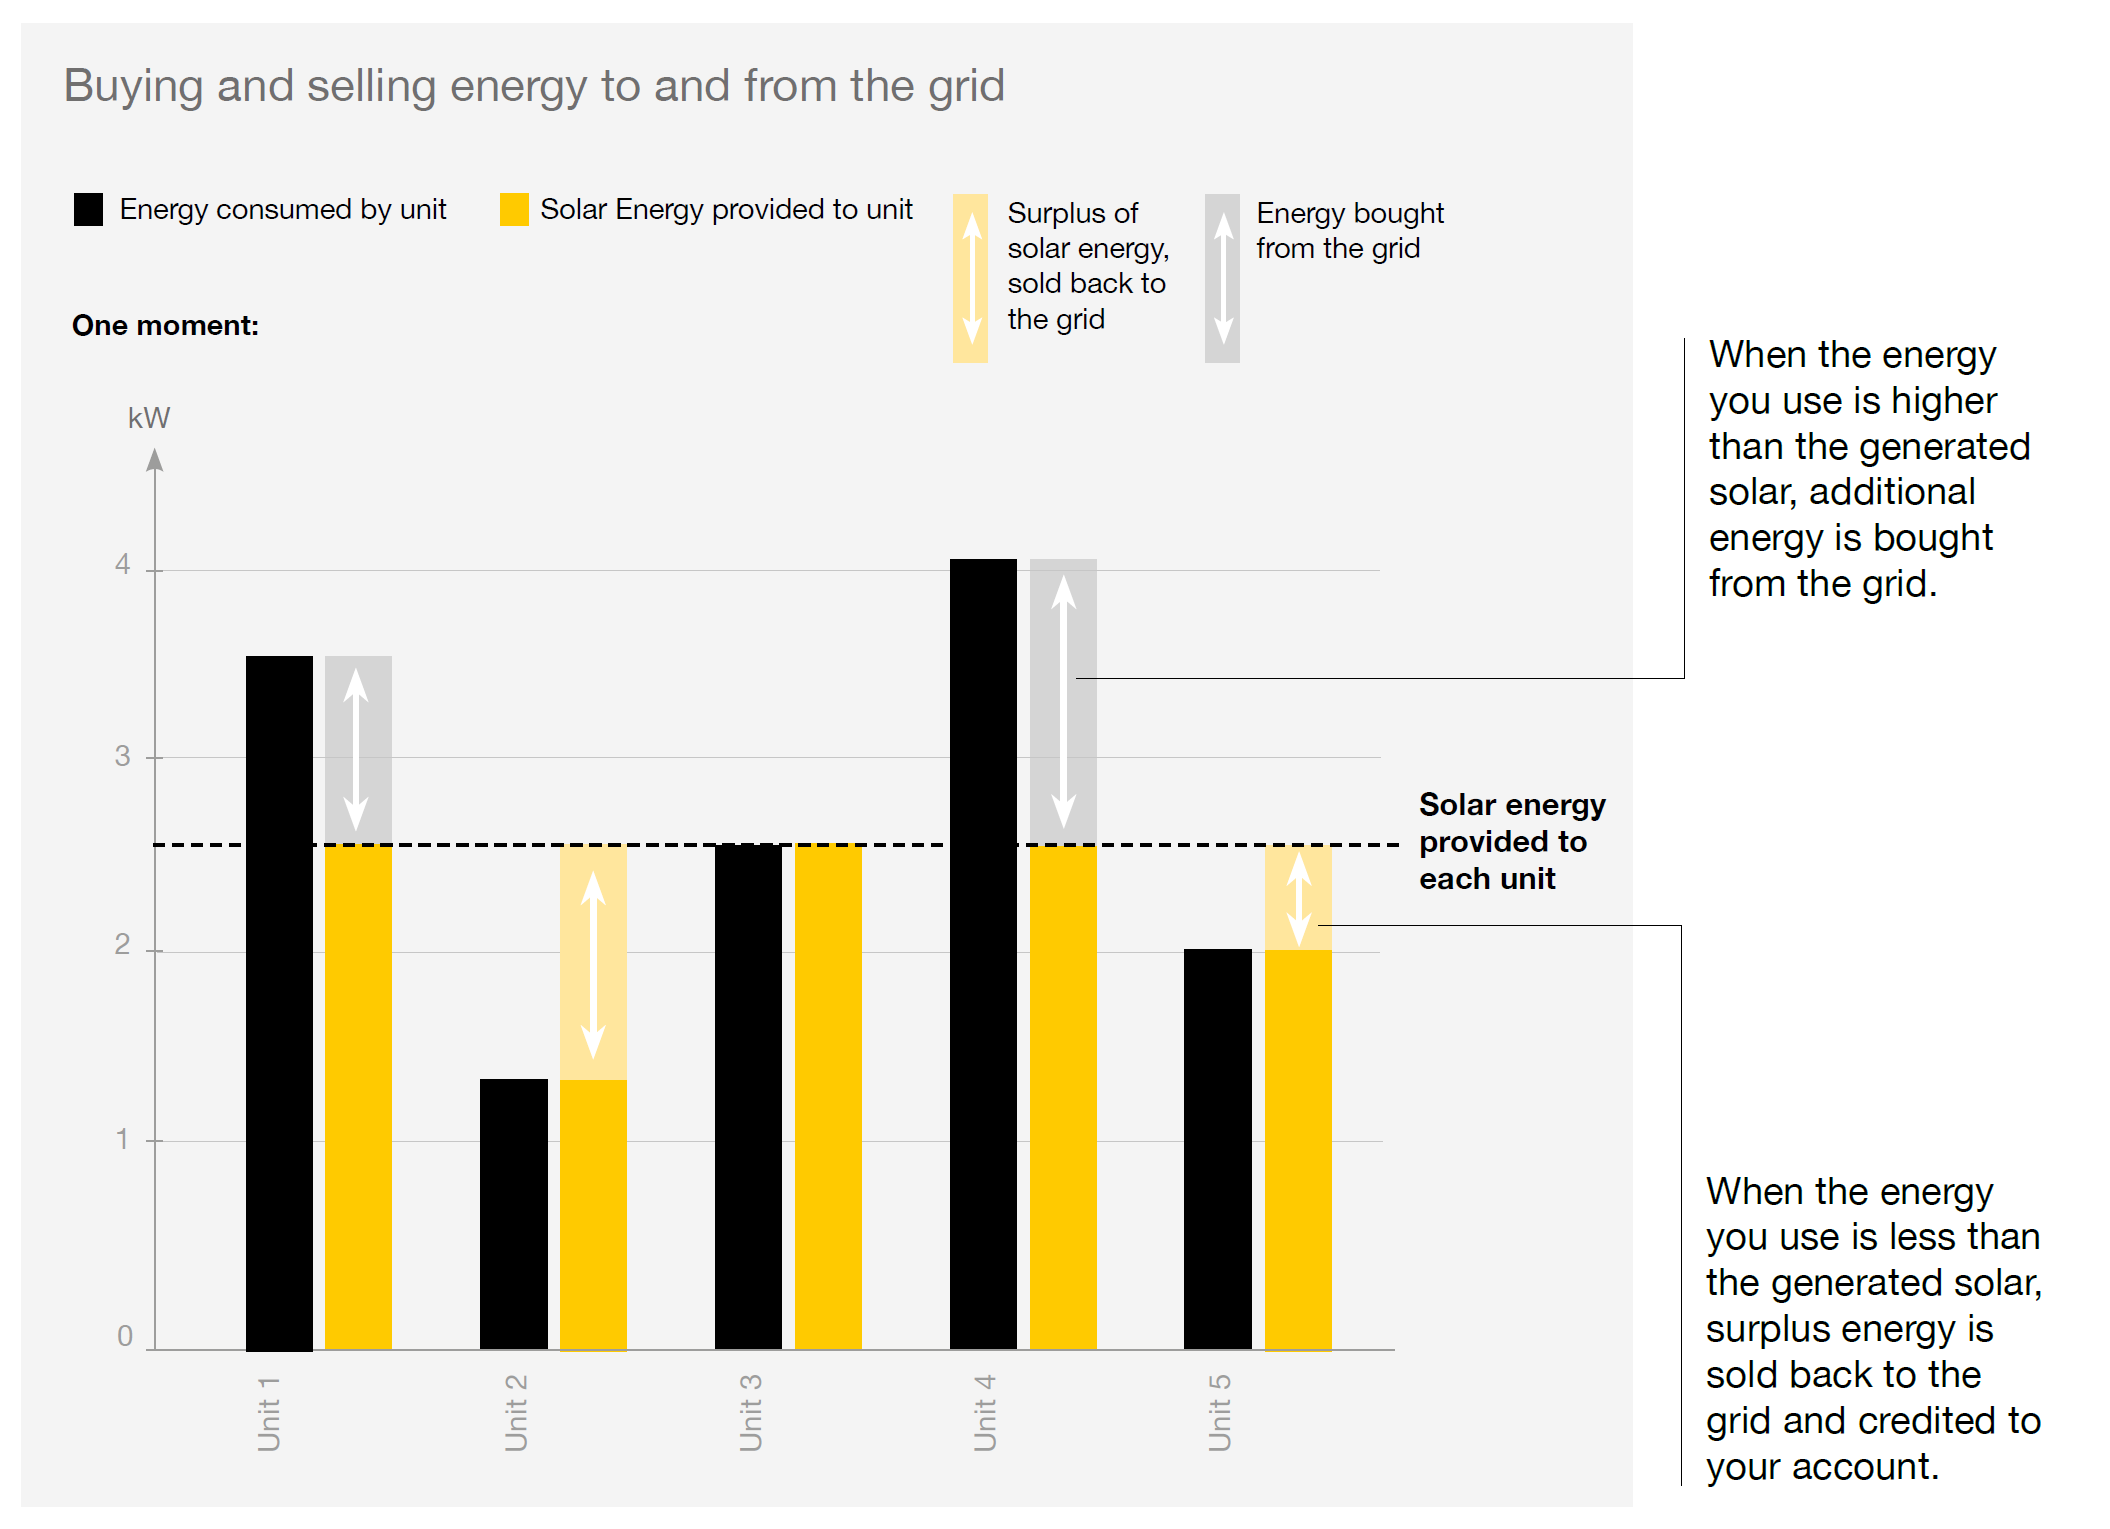 A graphic representation of buying and selling energy to and from the grid